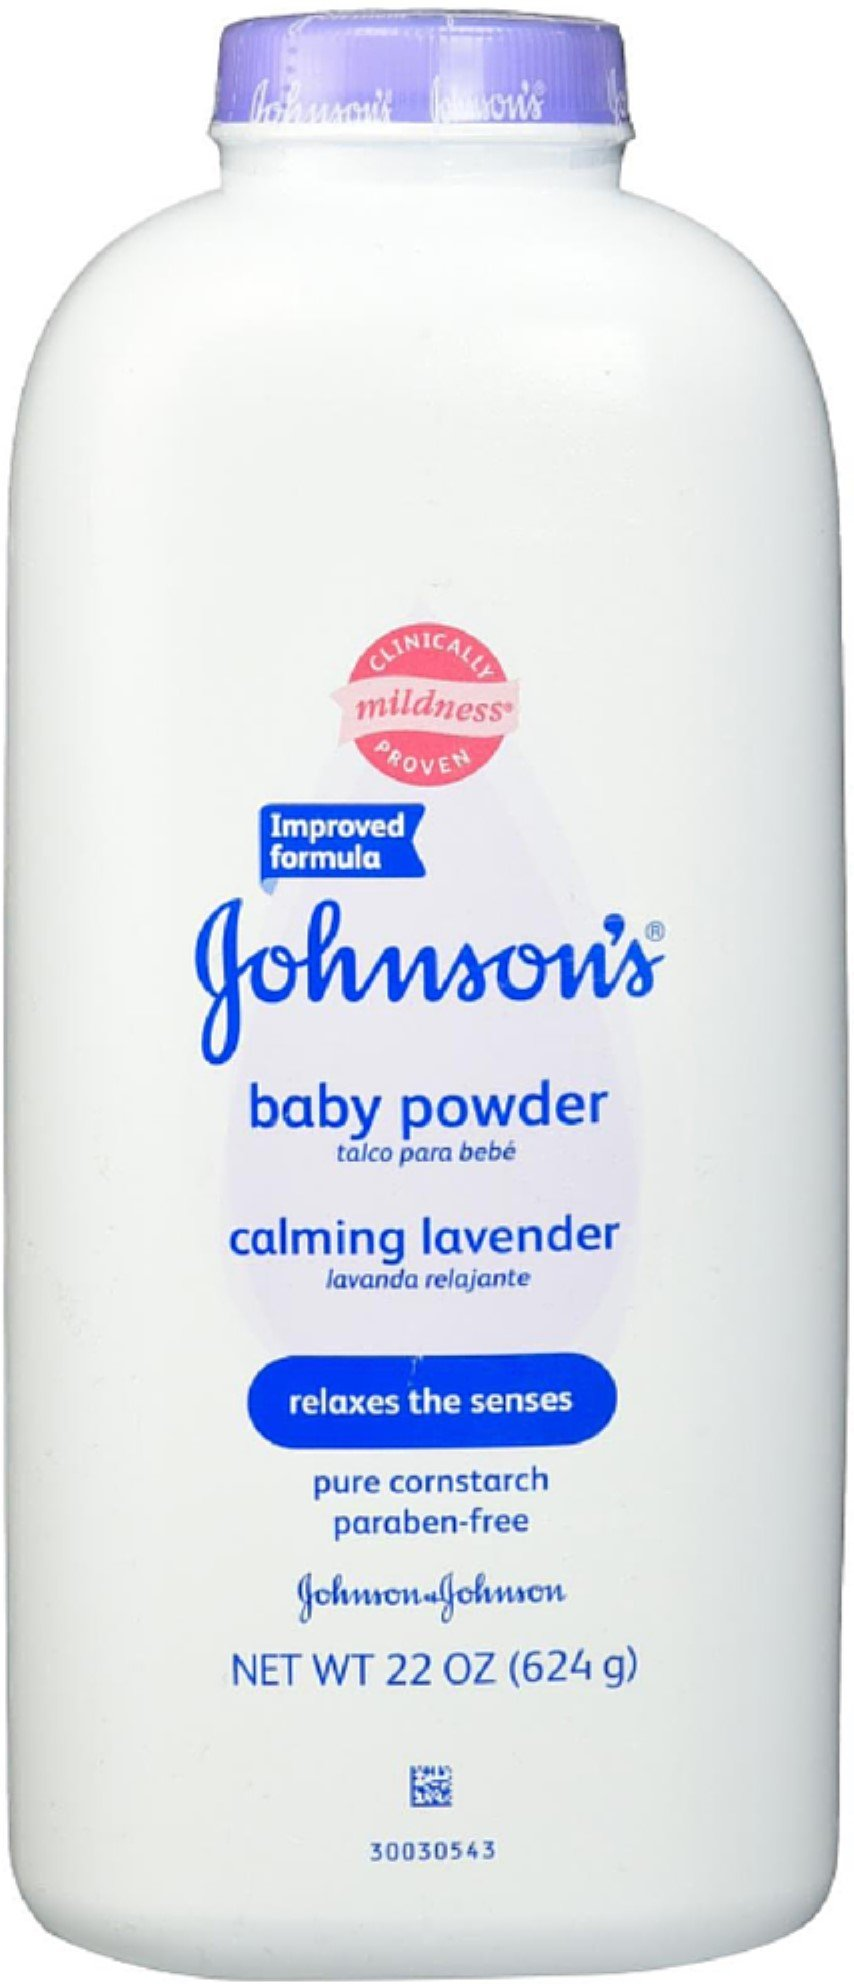 JOHNSON'S Baby Powder Calming Lavender 22 oz (Pack of 12) by Johnson's